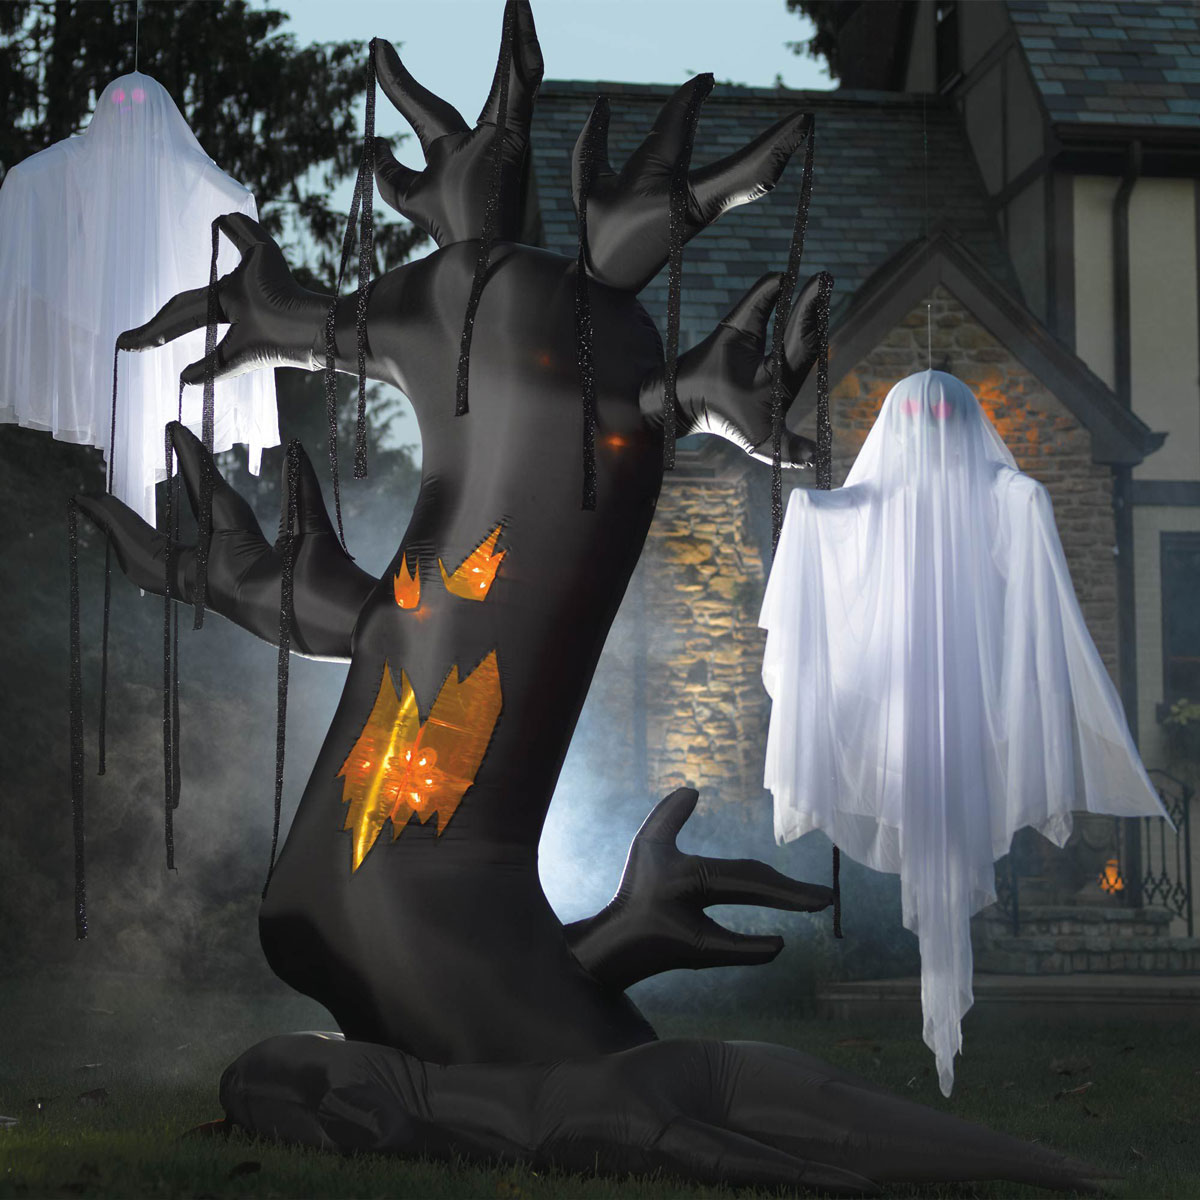 Outdoor halloween decorations for trees - Giant Inflatable Spooky Tree